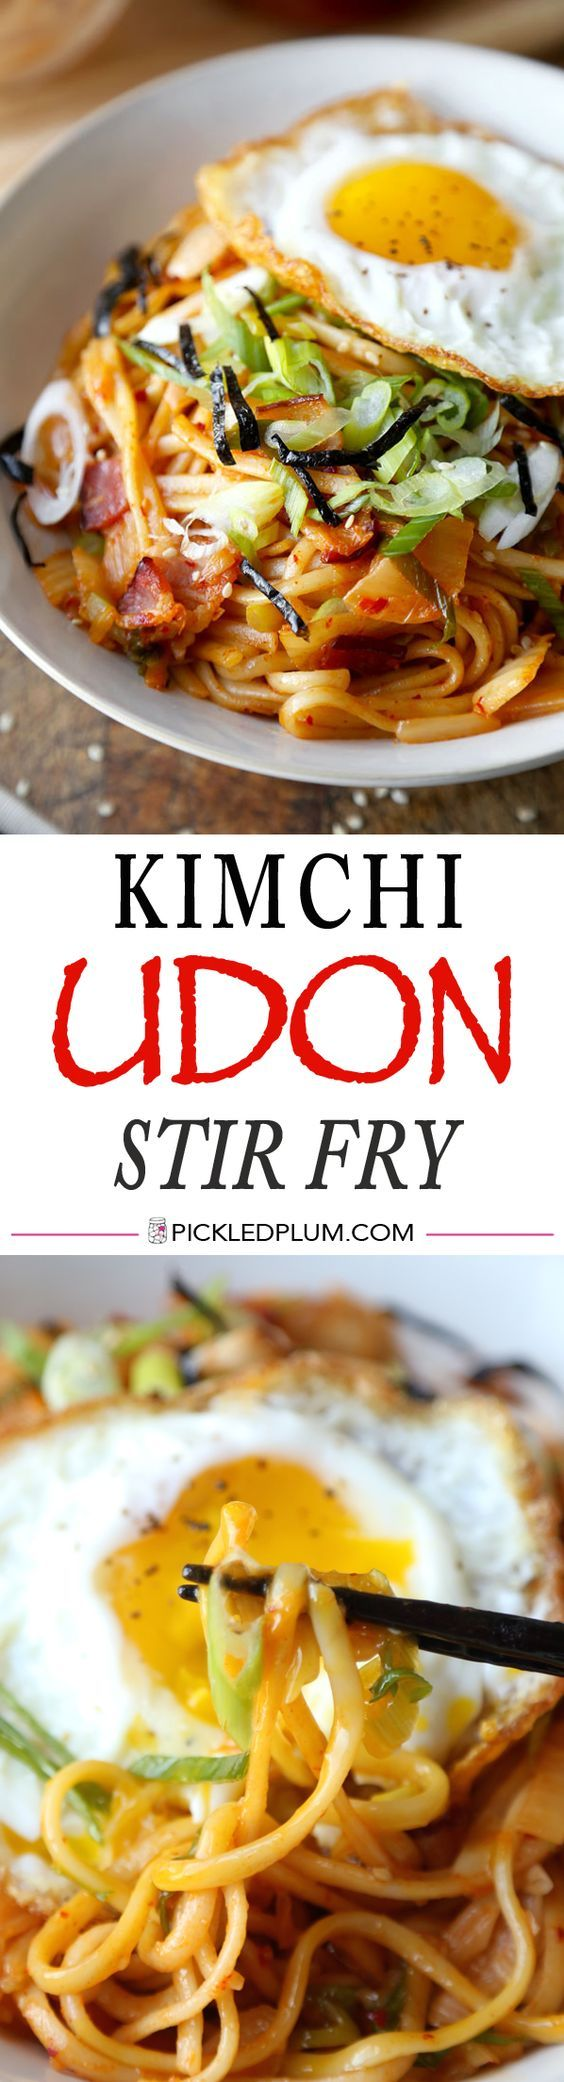 Kimchi Udon Stir Fry - Sizzling bacon and chewy udon noodles tossed in a tangy and spicy kimchi sauce - ready in 15 minutes! Recipe, noodles, spicy, easy, Korean | pickleplum.com